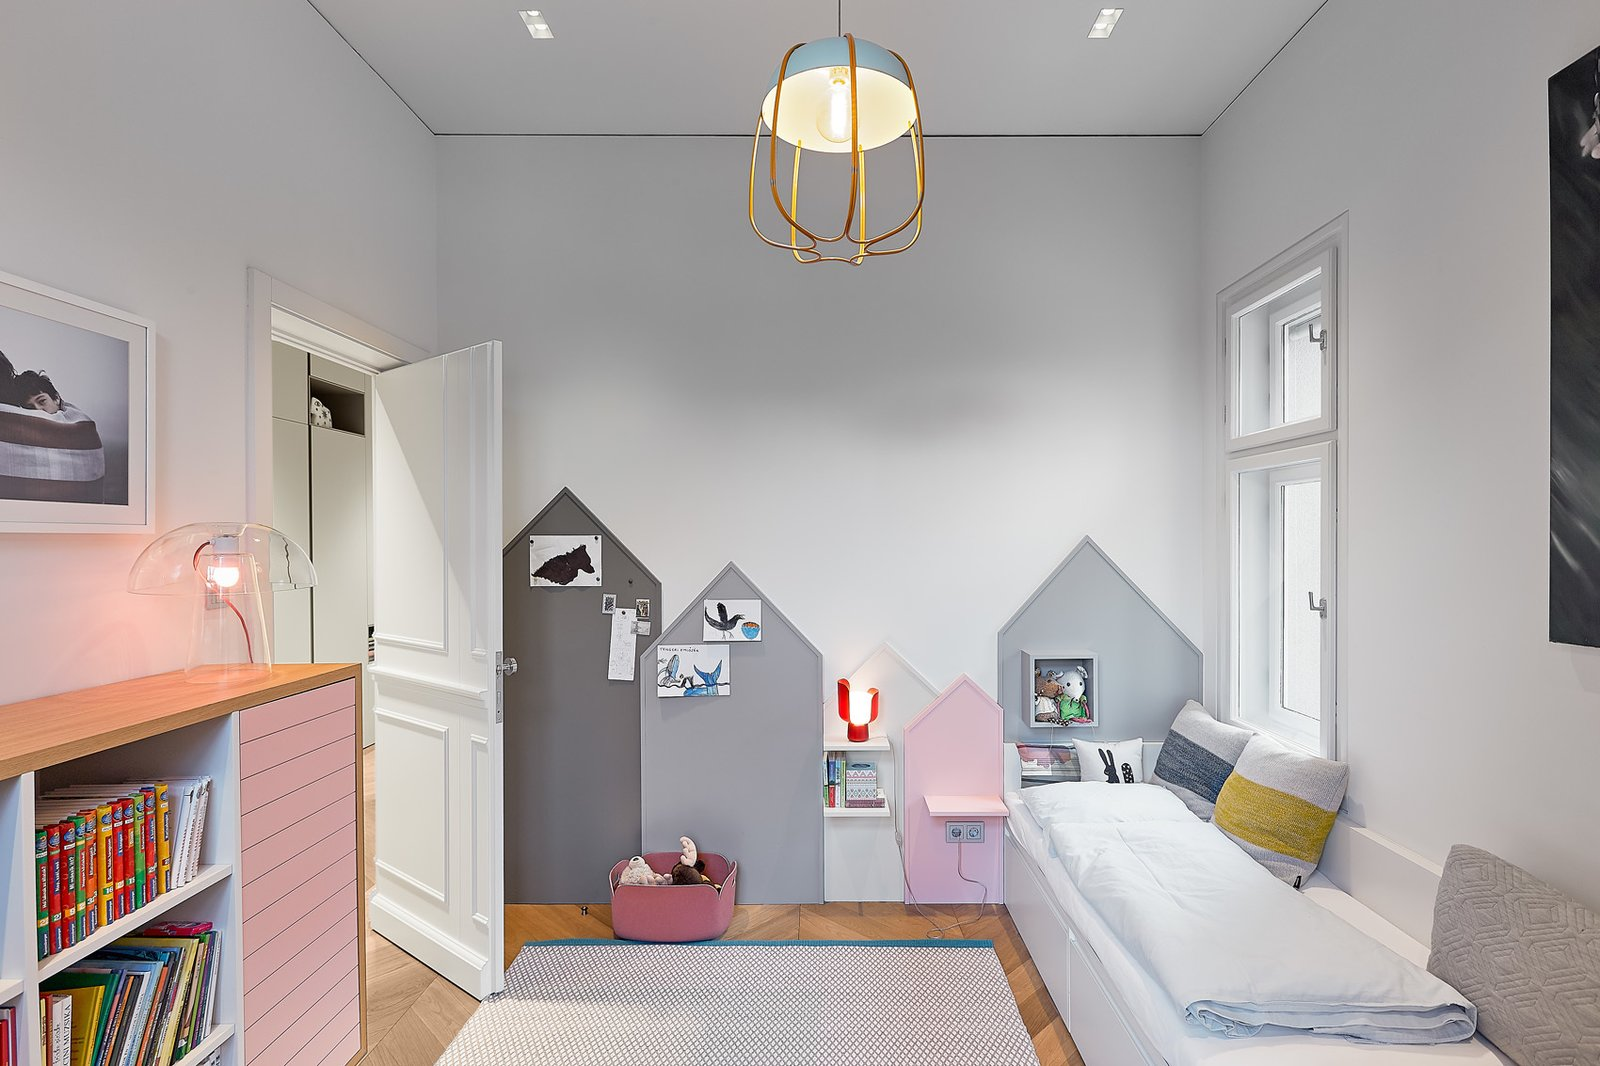 Tagged: Kids, Playroom, Bedroom, Storage, Shelves, Lamps, Light Hardwood, and Rug.  Best Kids Photos from A Family Villa in Budapest With Colorful, 1960s-Inspired Interiors